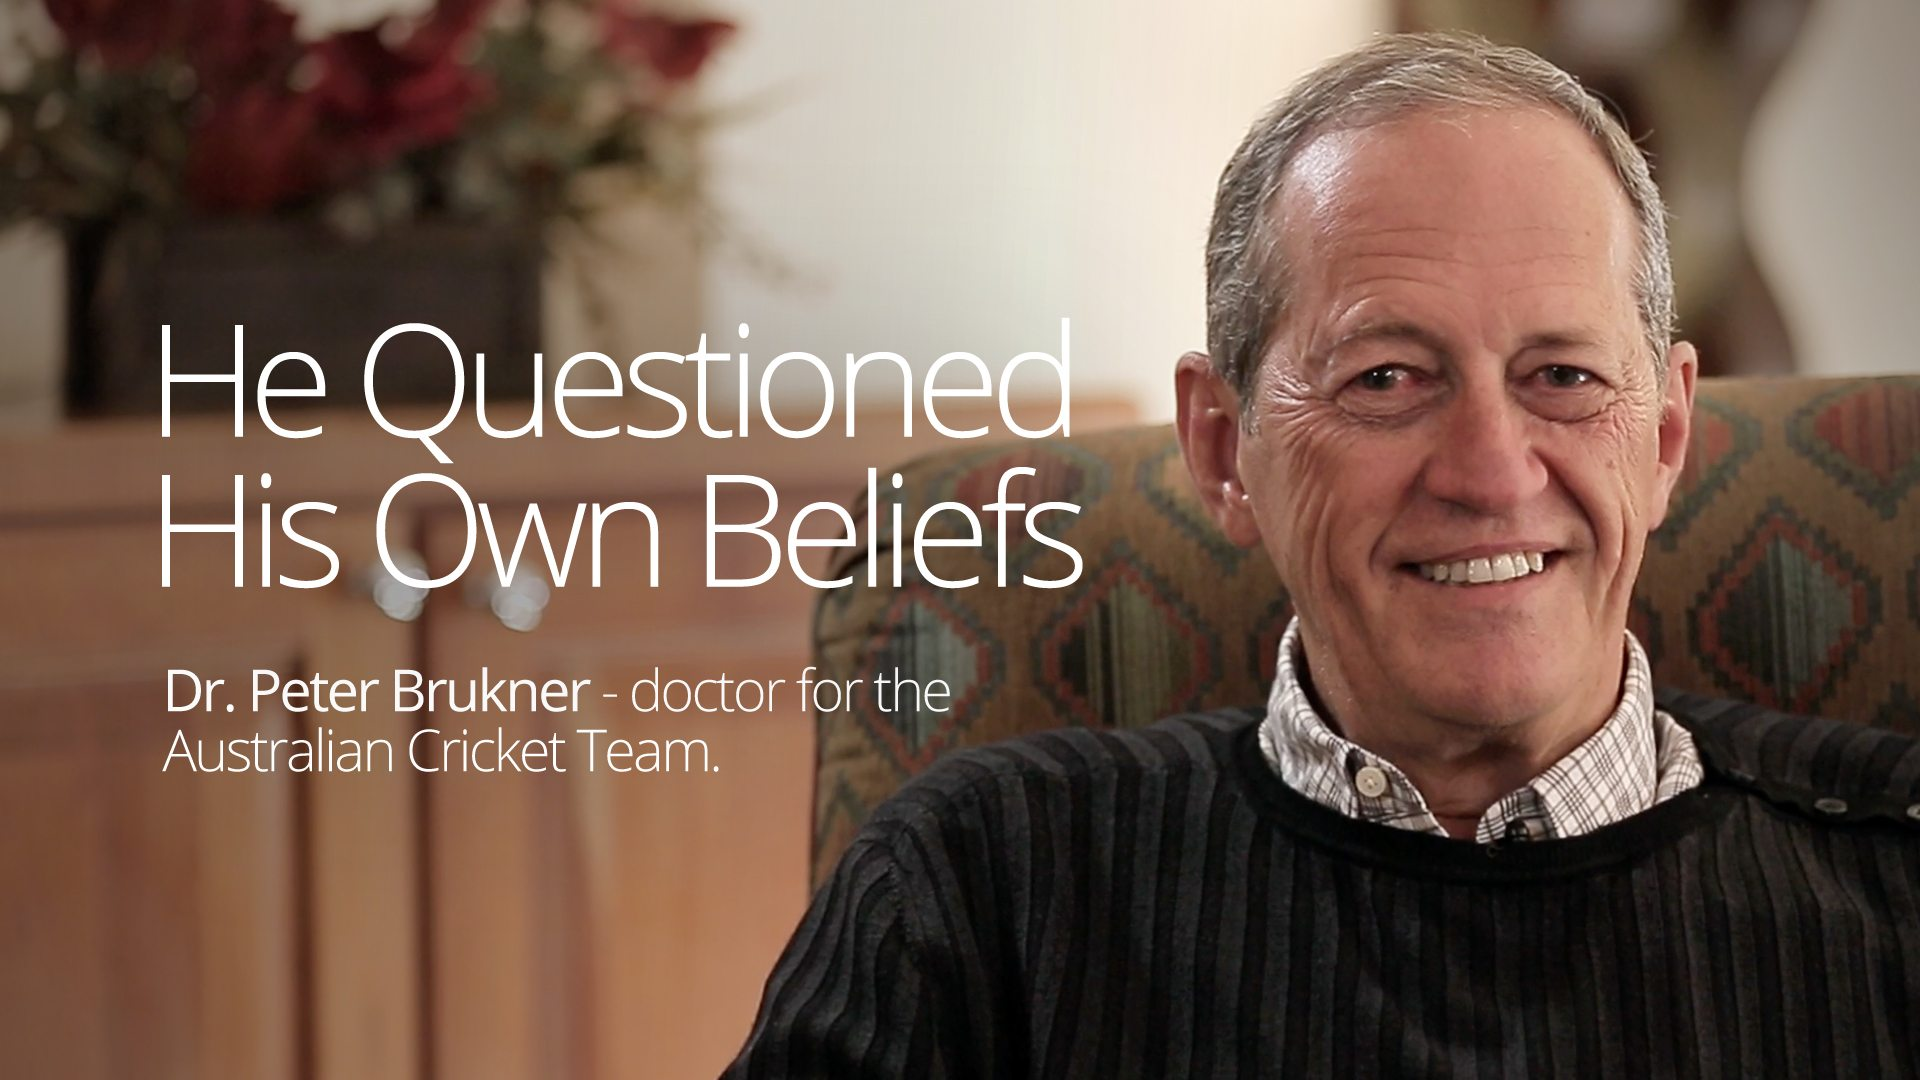 He Questioned His Own Beliefs –Interview with Dr. Peter Brukner, part 1